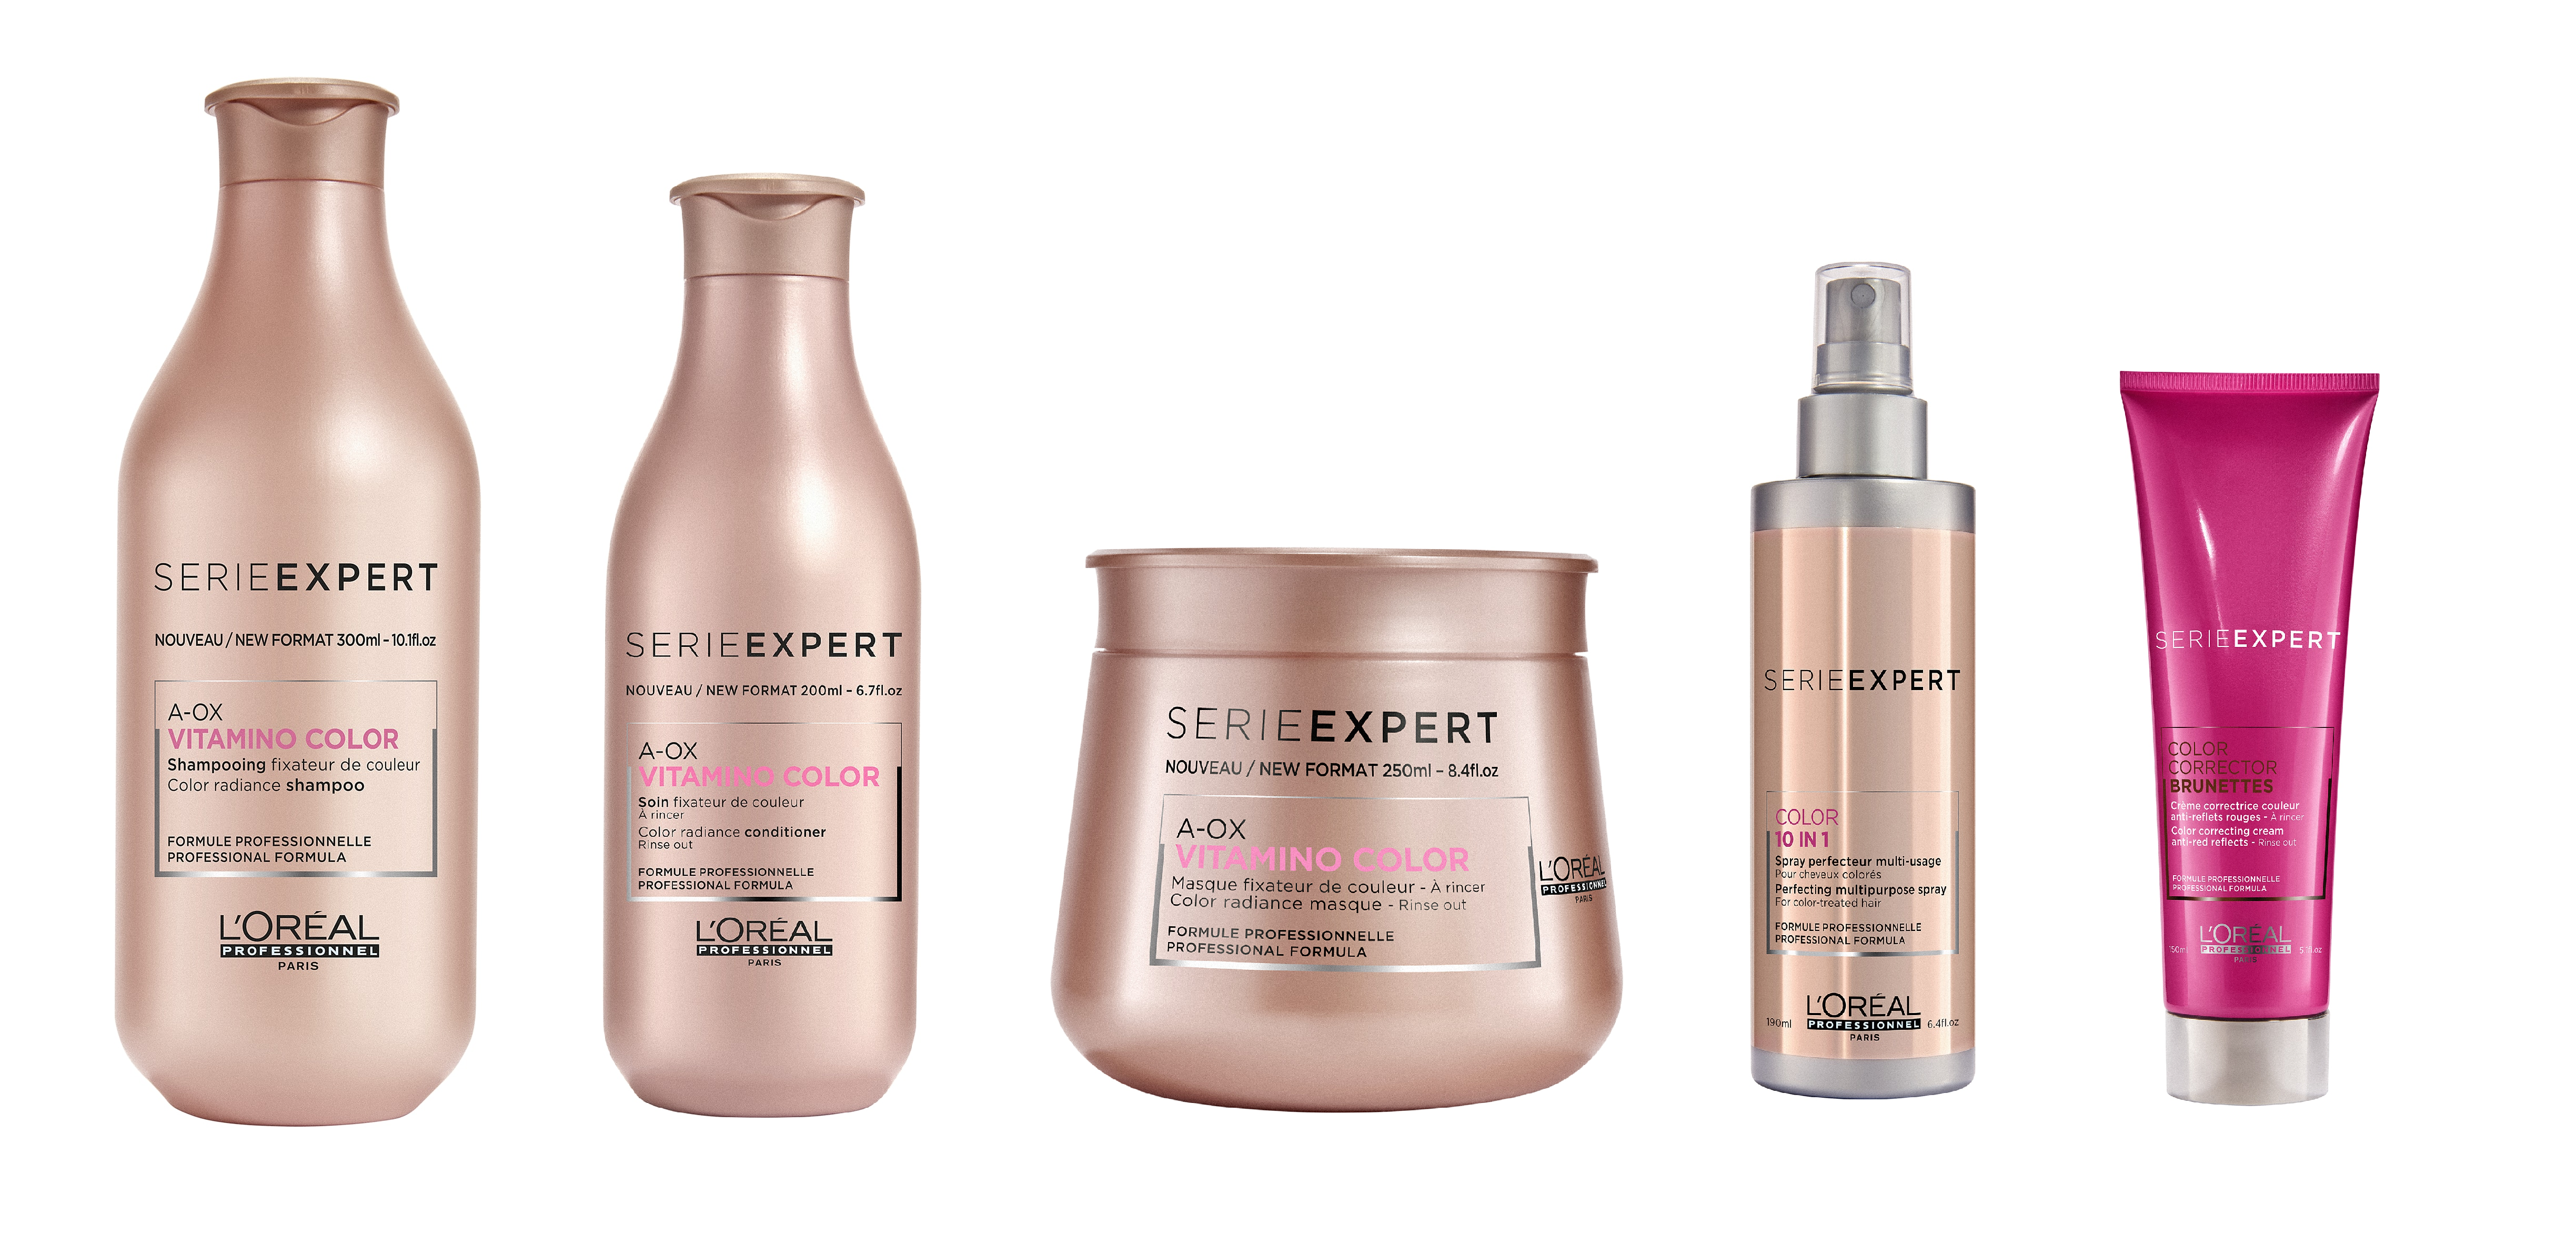 Top 10 Shampoo And Conditioner images